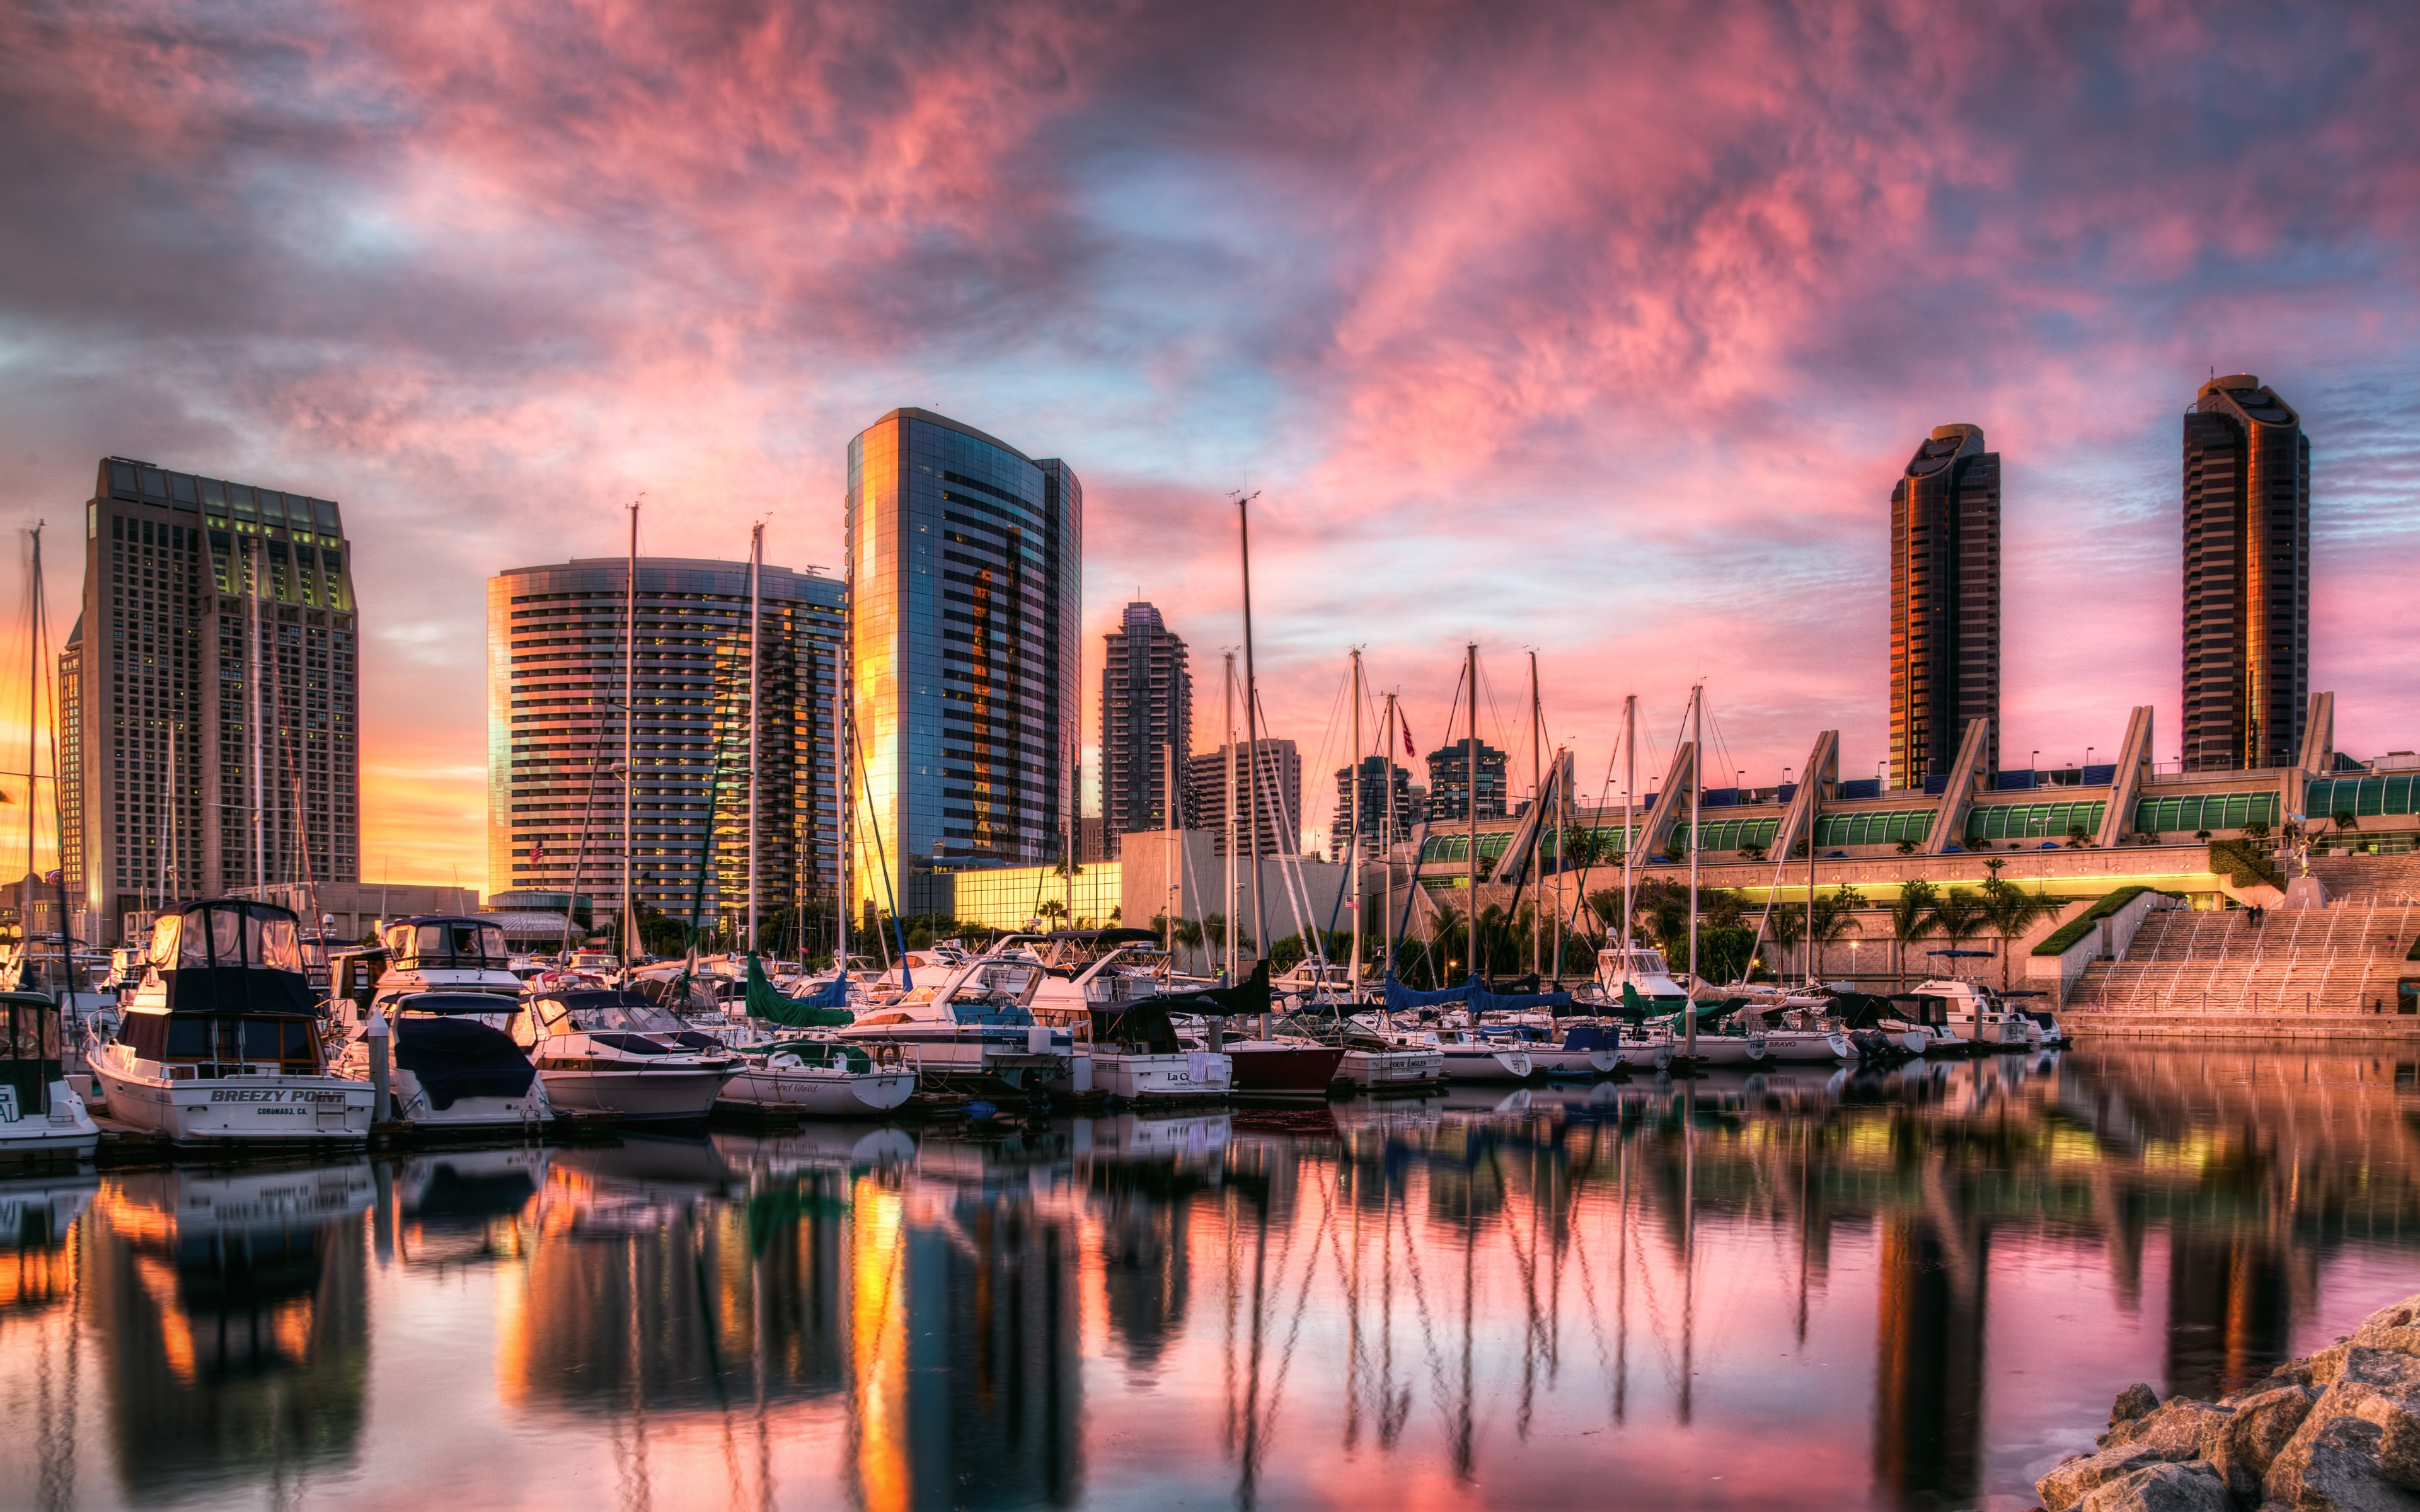 Sunset in San Diego harbor wallpaper 3840x2400